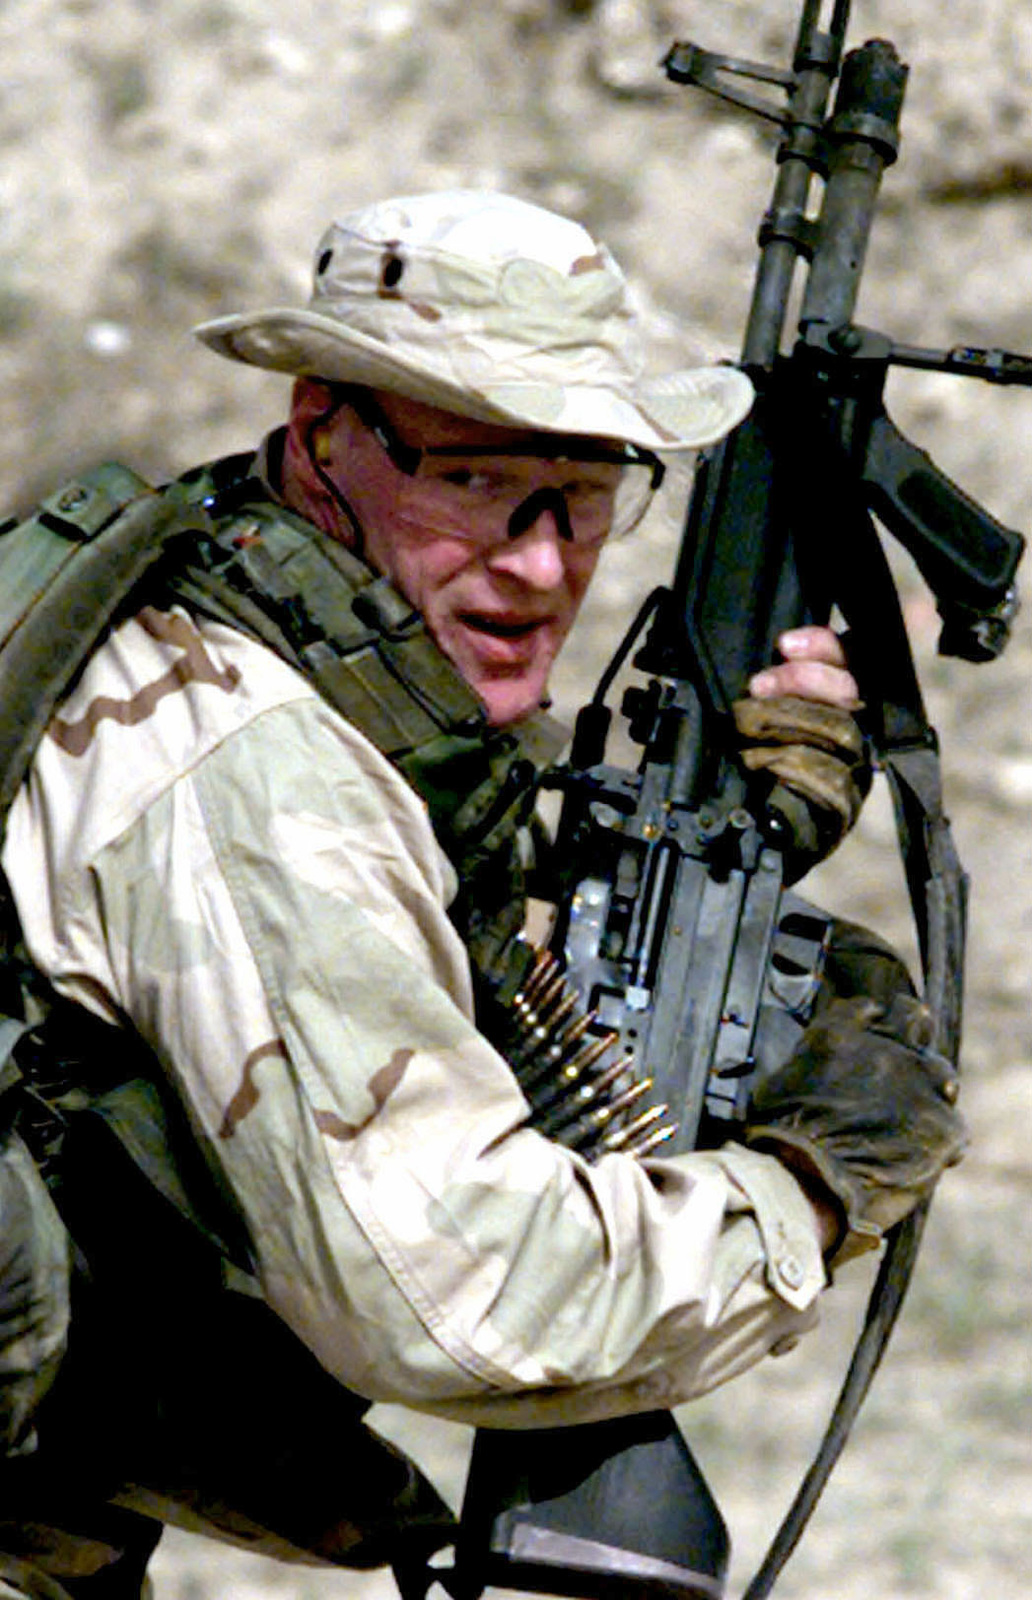 A US Navy SEAL, from SEAL Team 8, manuevers with a M-60